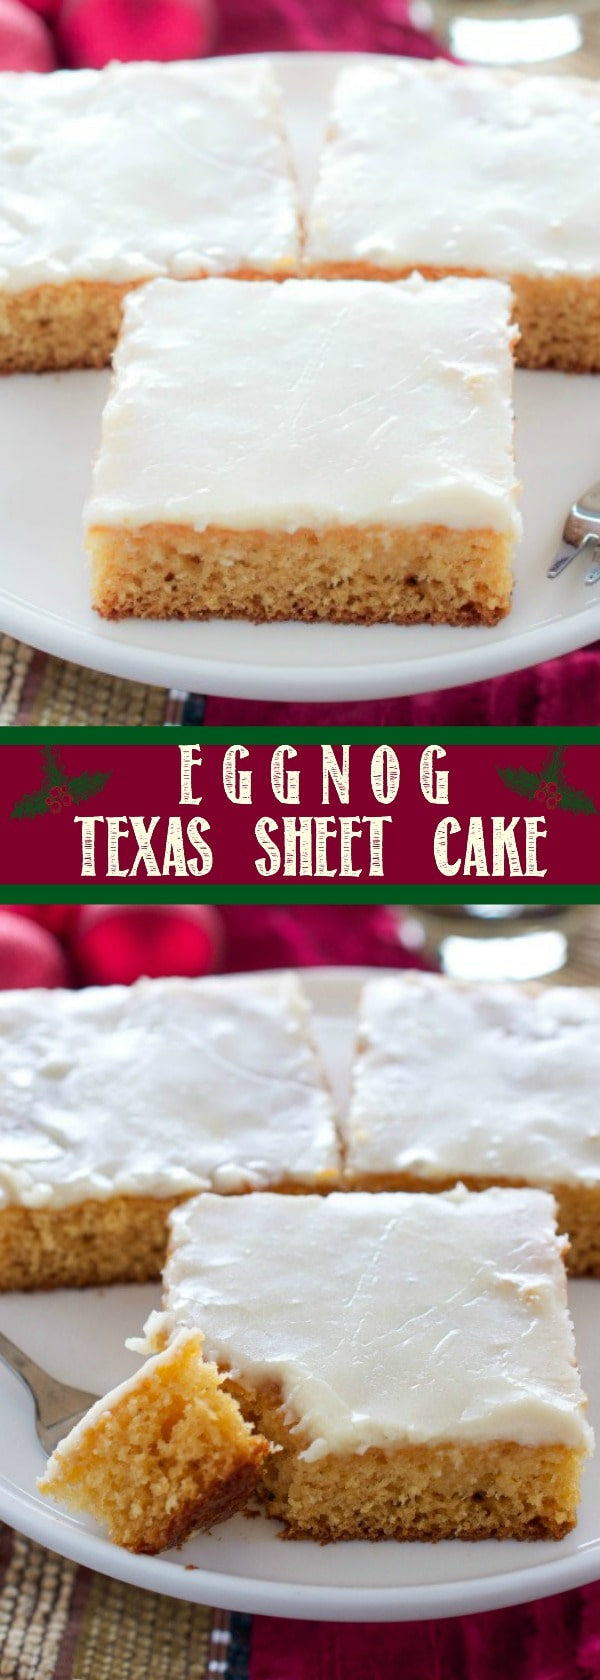 Need an easy dessert to bring to a holiday gathering? This Eggnog Texas Sheet Cake feeds a crowd and is amazingly delicious! The Eggnog icing is incredible!